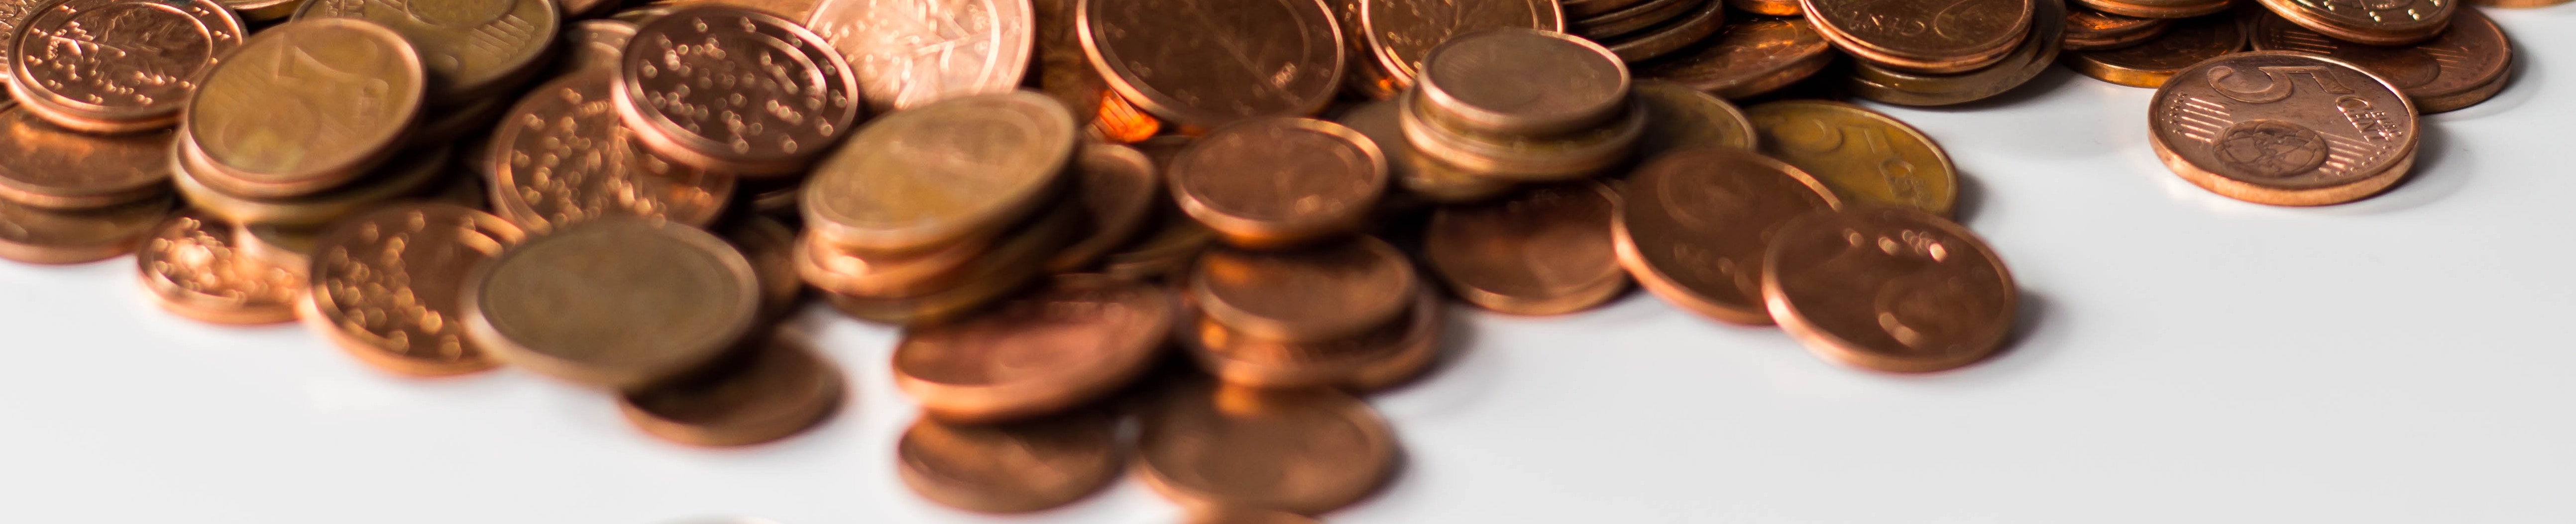 Pennies and copper coins in a pile.